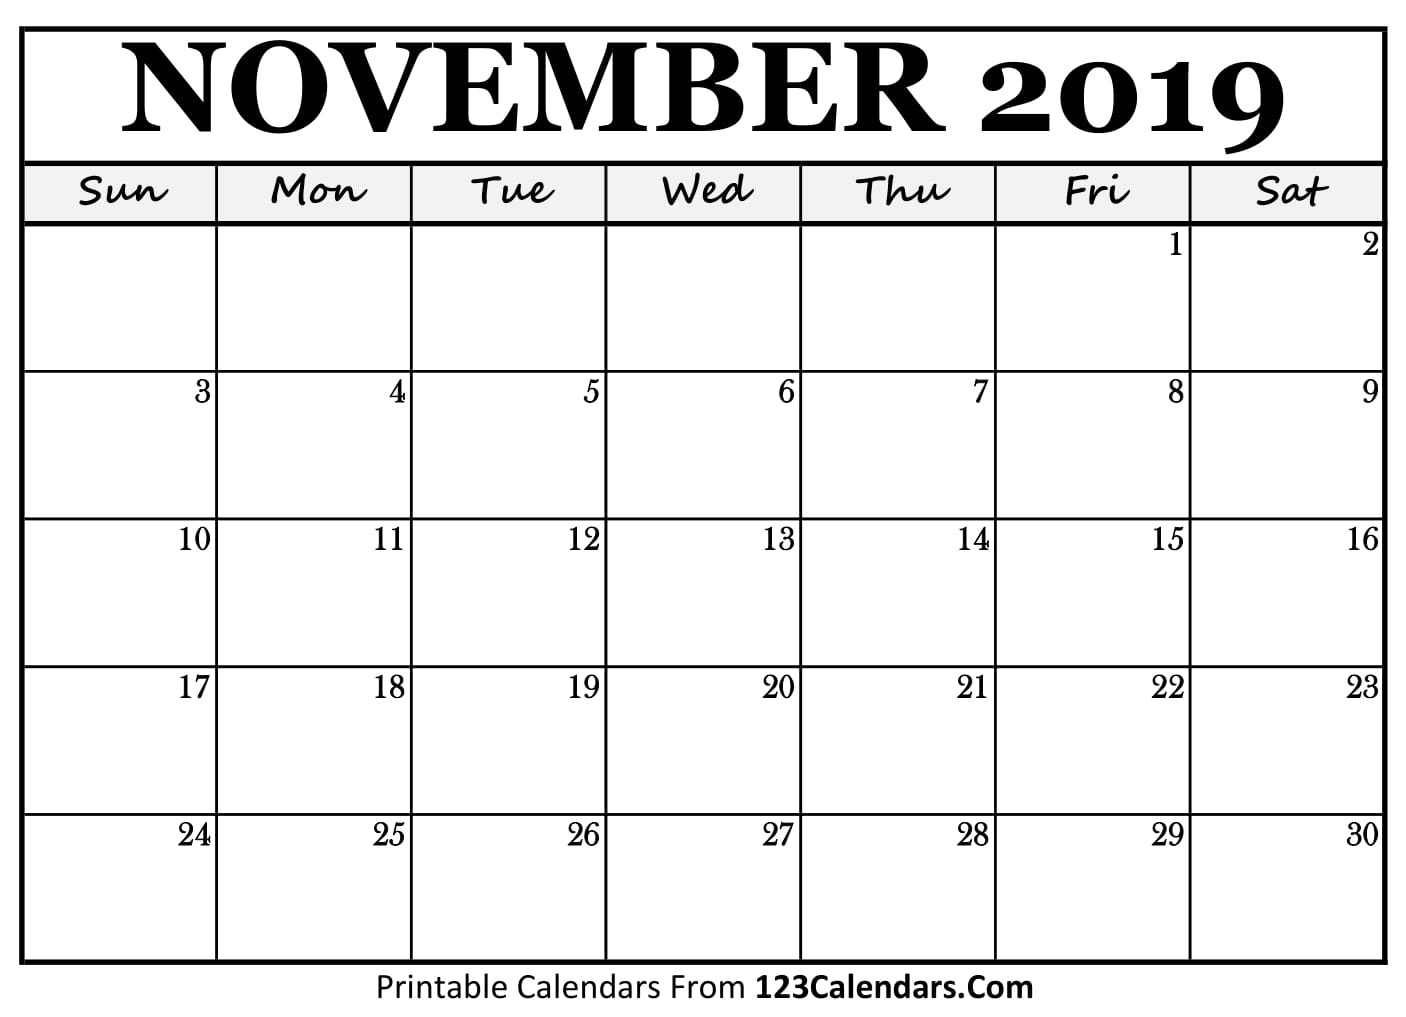 photograph about Printable November Calendar titled November 2019 Printable Calendar